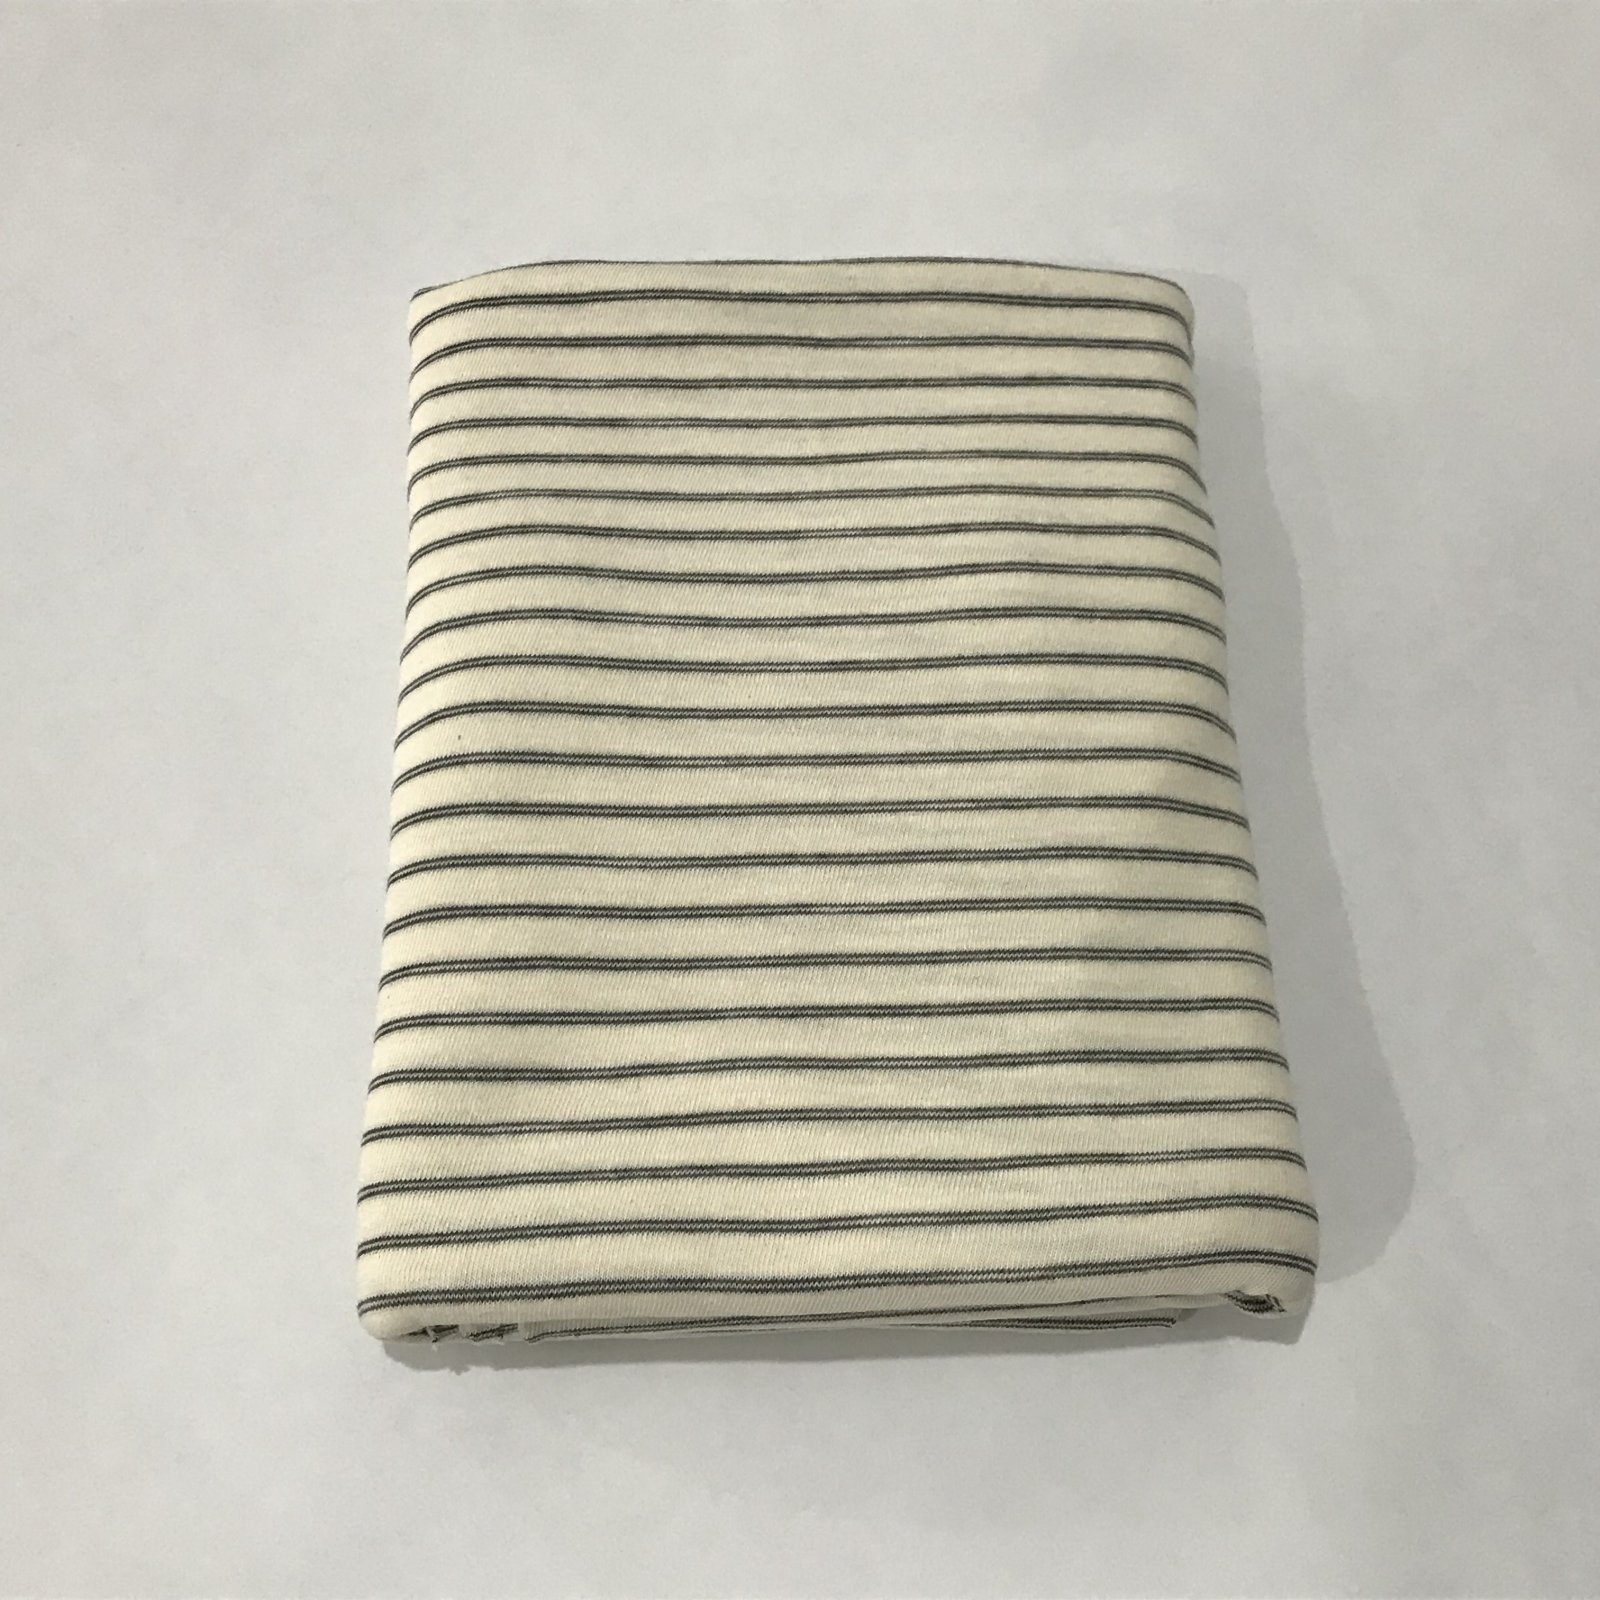 Cotton Knit - Cream with Black Stripes - 2 yards